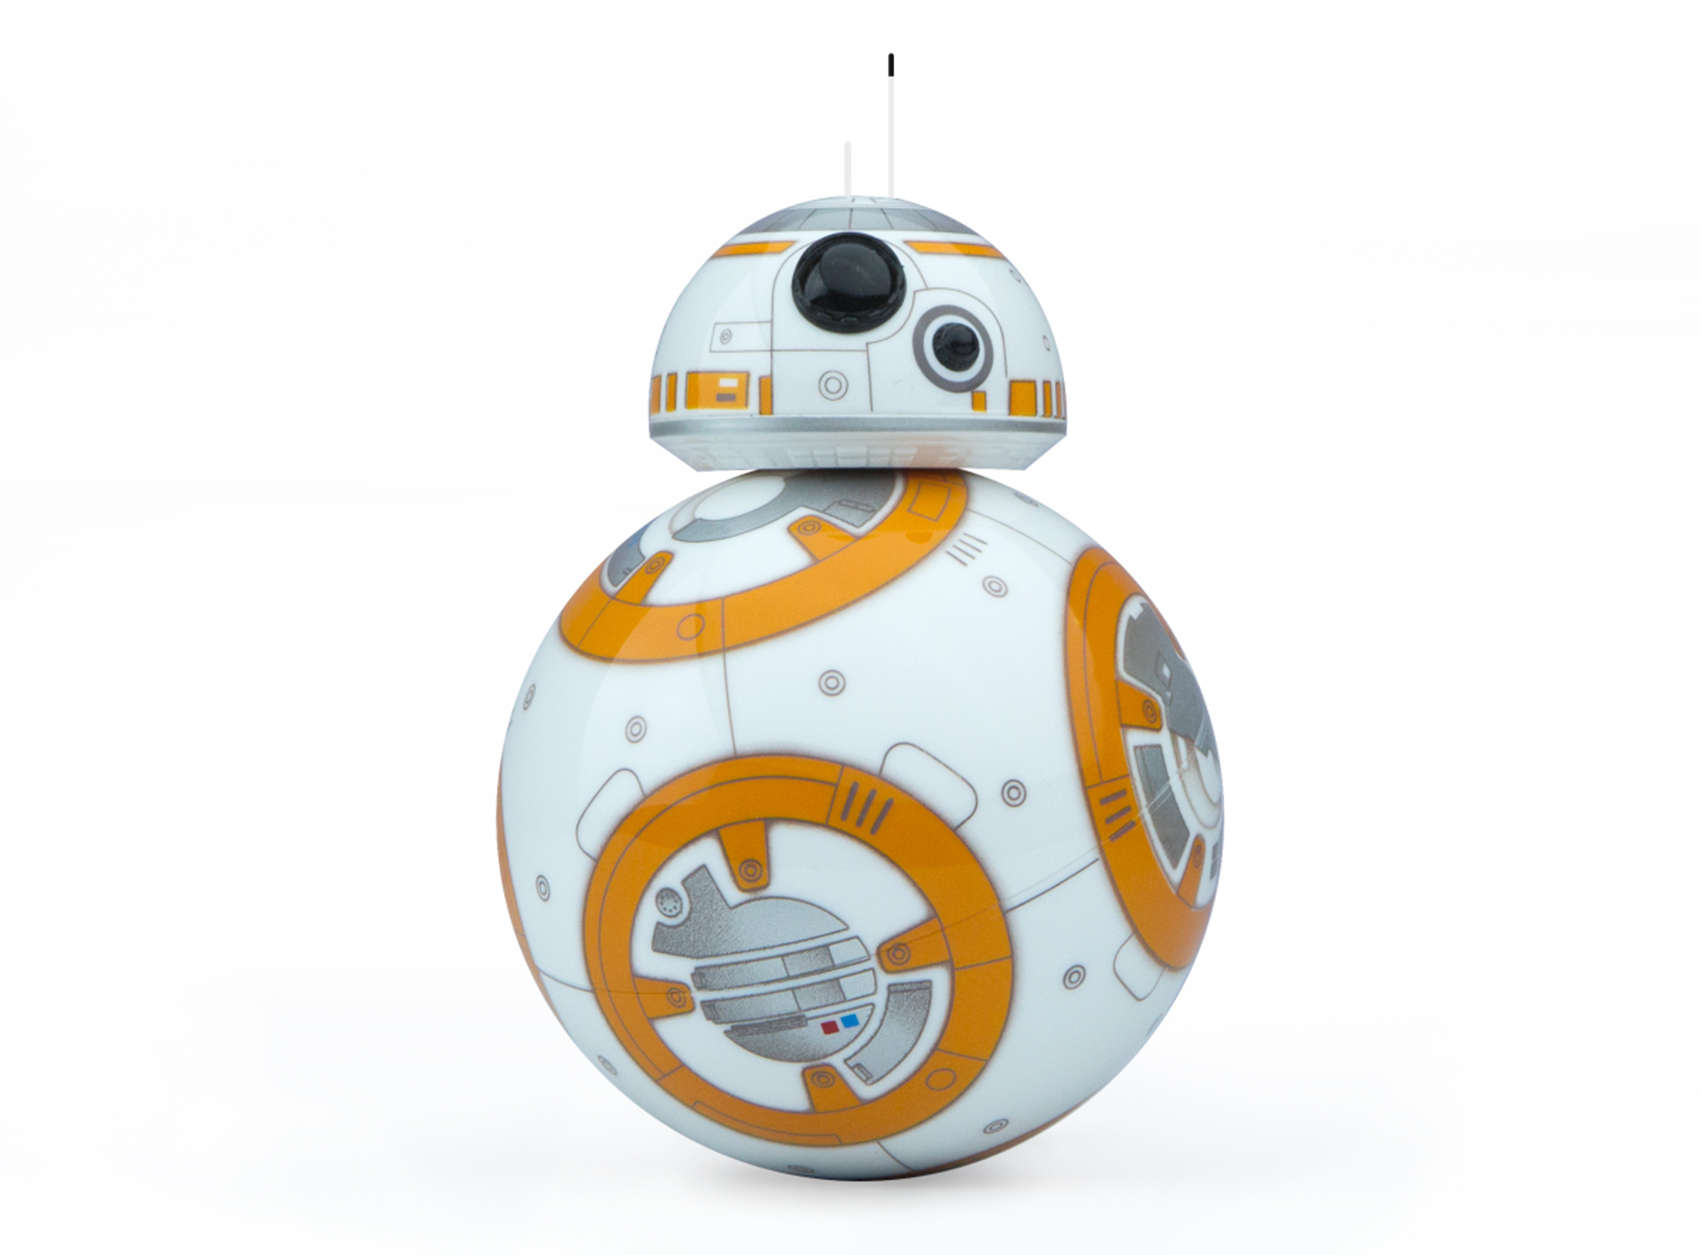 BB-8, the cute little droid from Star Wars: The Force Awakens, is now available as an app-enabled companion.